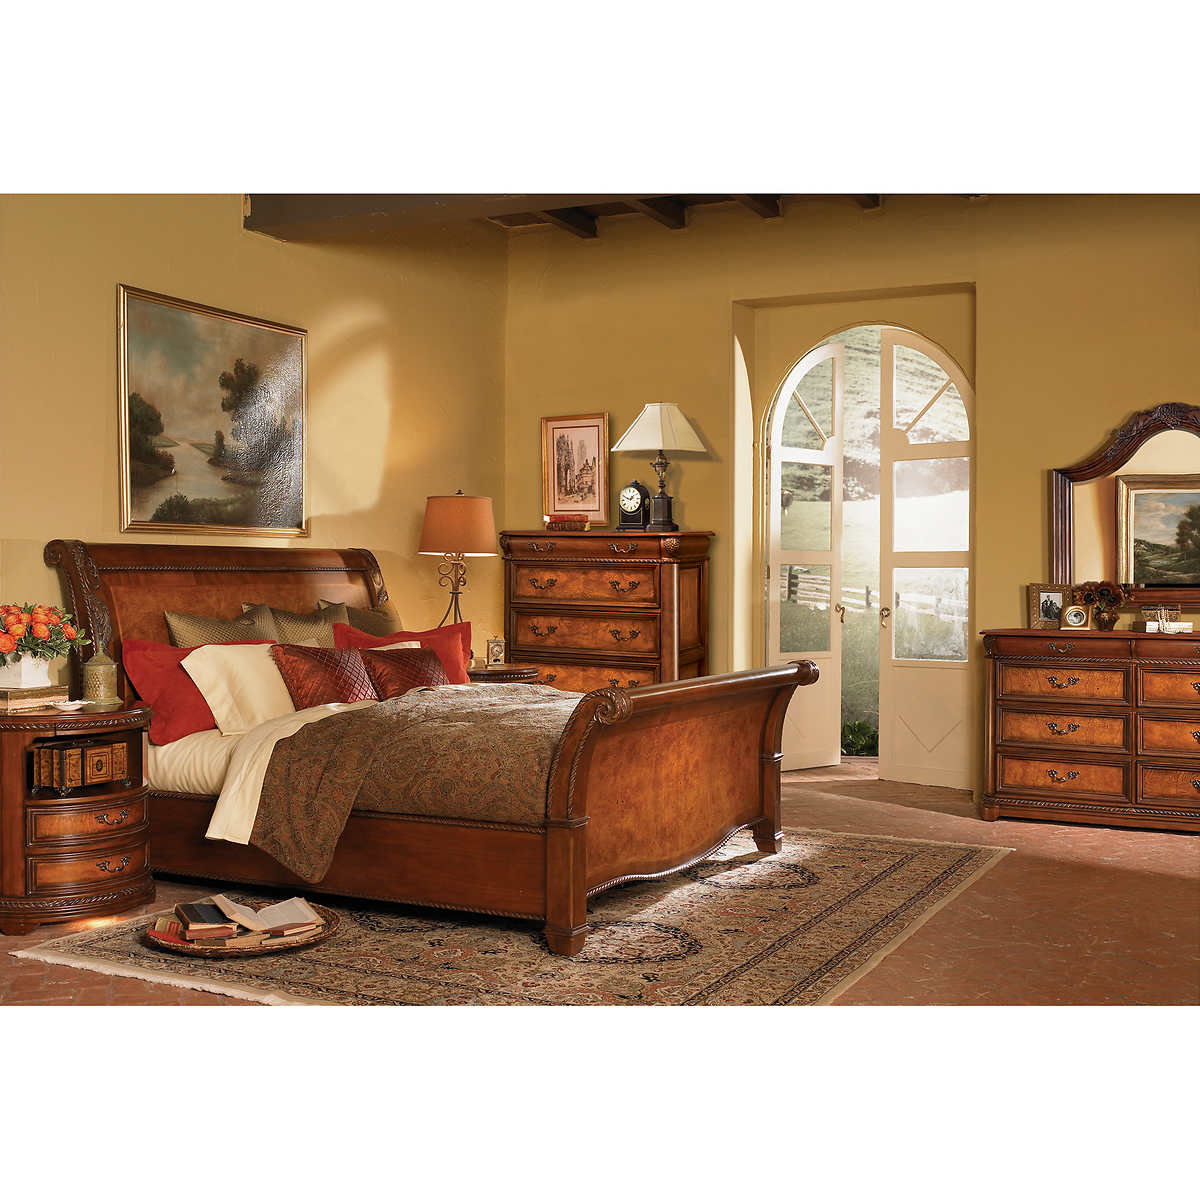 King Bedroom Furniture